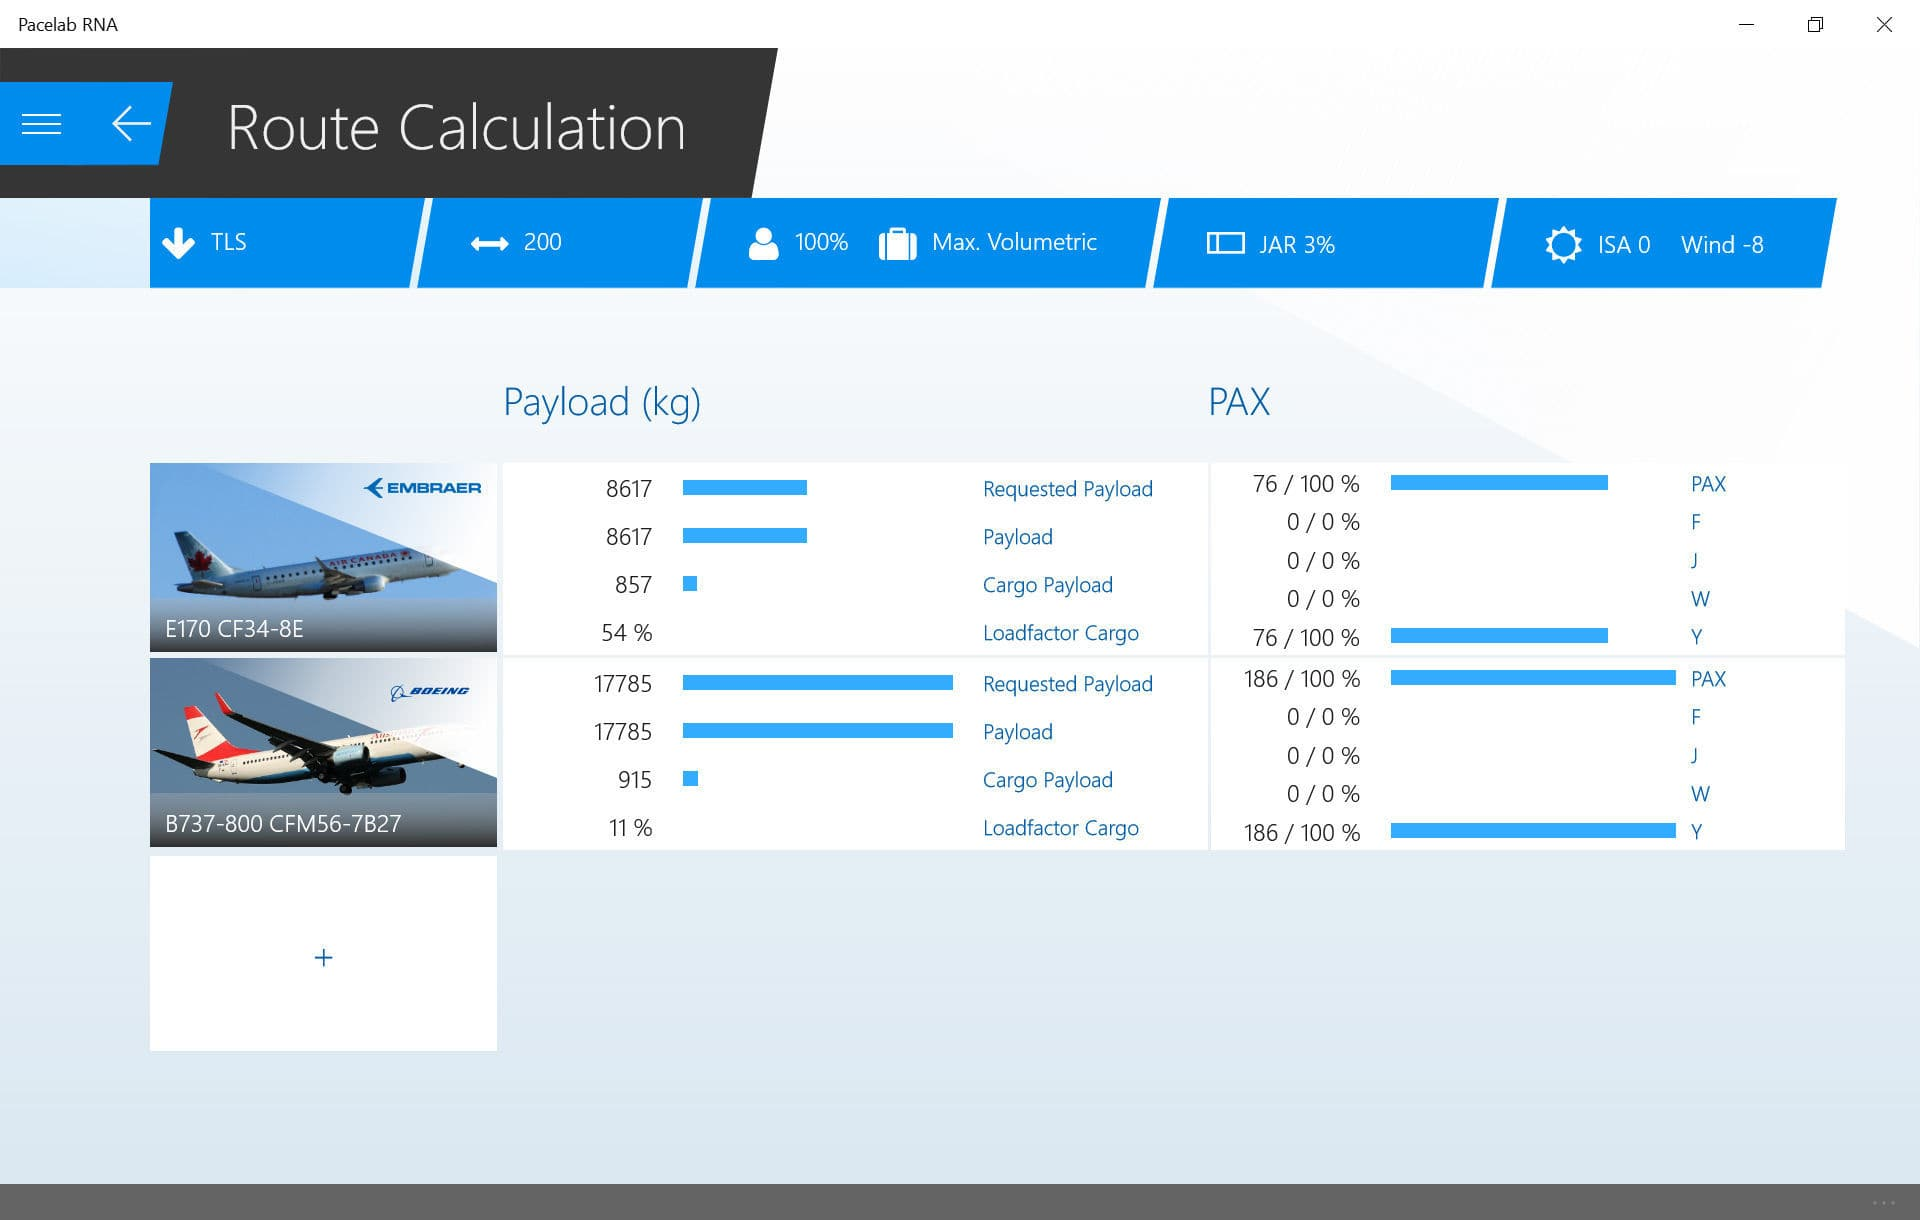 Analysis software / calculation / for aeronautics - RNA - PACE GmbH